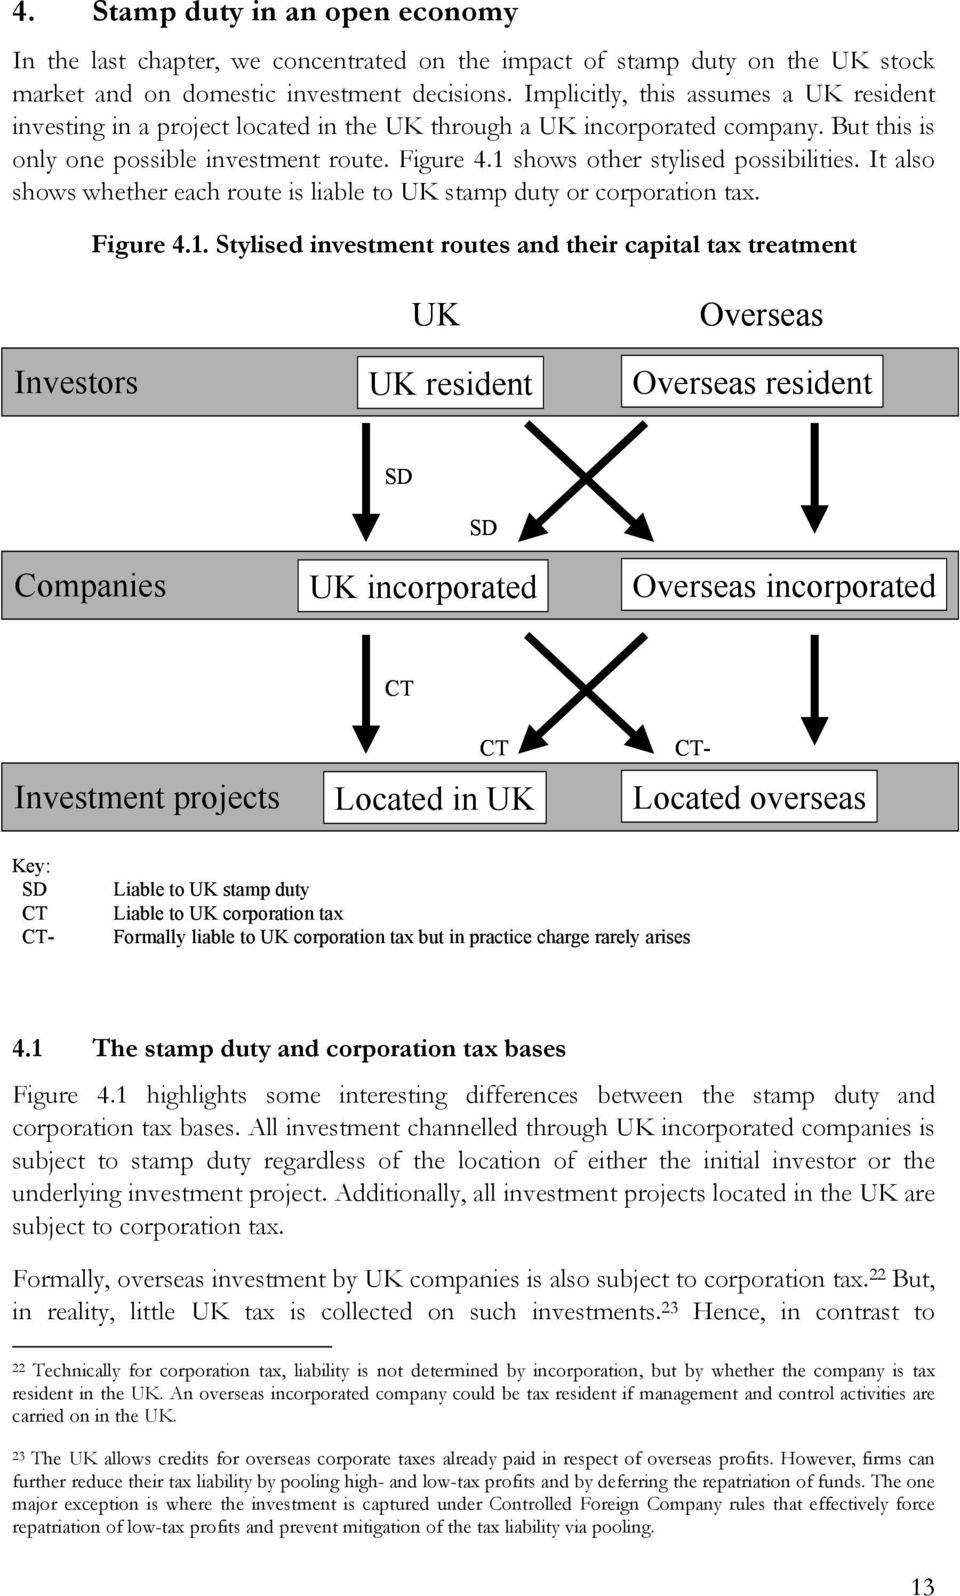 1 shows other stylised possibilities. It also shows whether each route is liable to UK stamp duty or corporation tax. Figure 4.1. Stylised investment routes and their capital tax treatment Investors